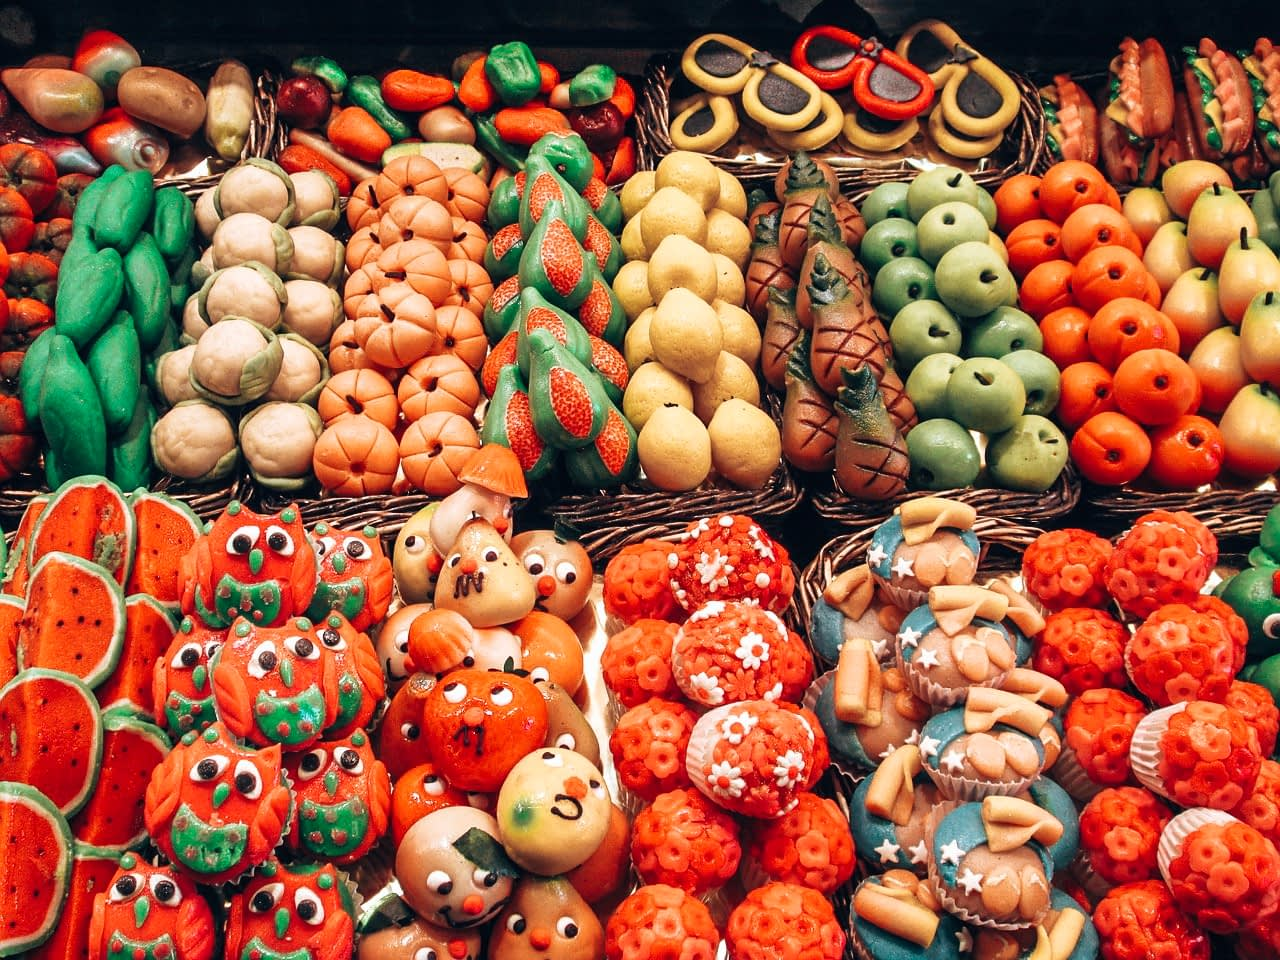 A Full Day in Barcelona - Picture of sweets shaped and painted like fruits and vegetables in a market